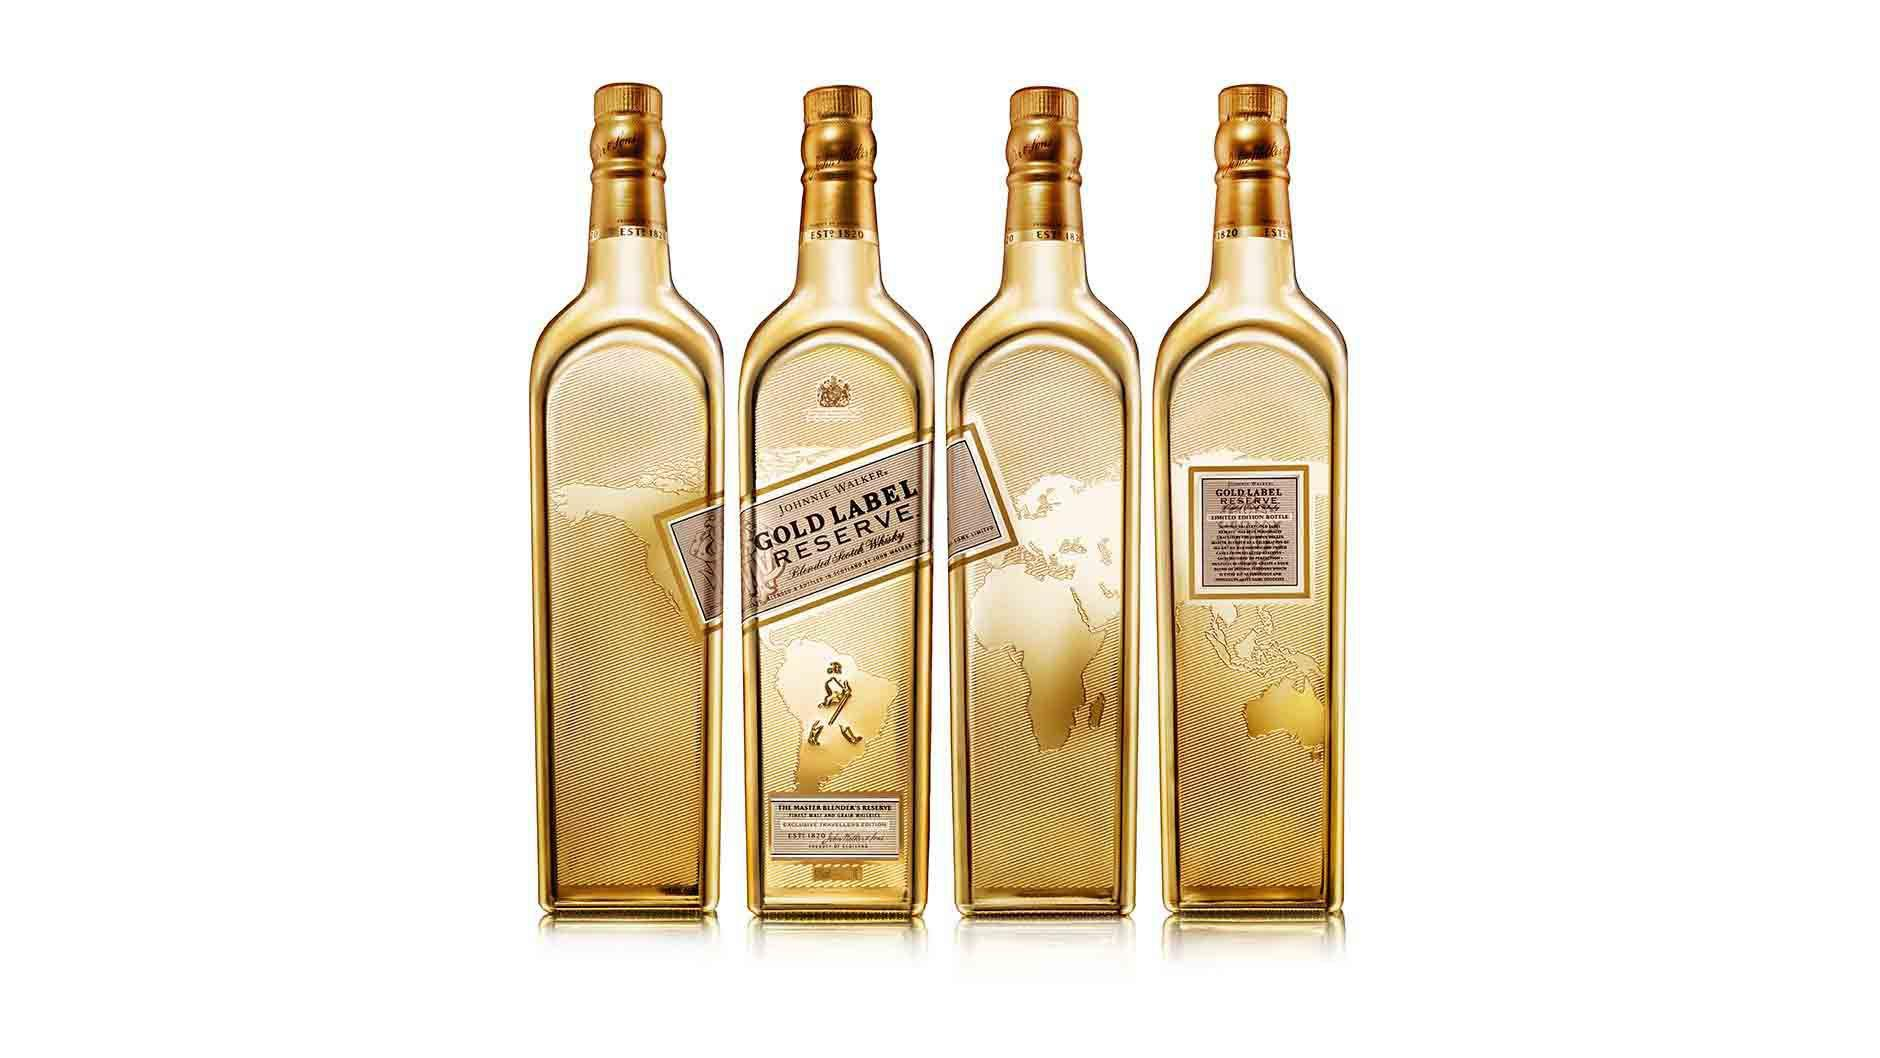 Vier zijden van een fles Johnnie Walker Gold Label Reserve Limited Edition whisky